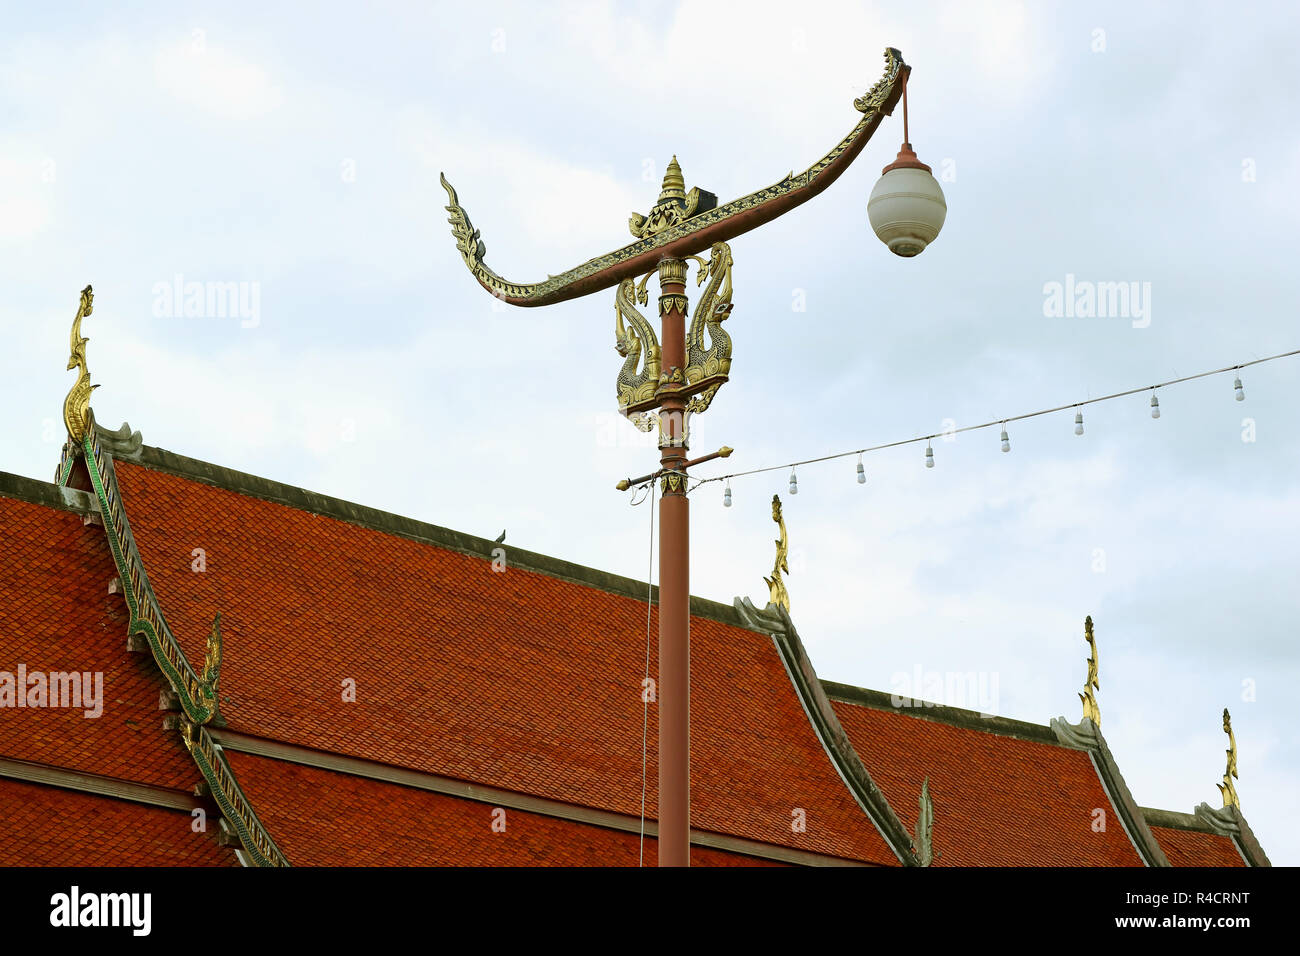 Thai Vintage Racing Boat Shaped Street Lamp against Temple's Tiled Roof and Cloudy Sky, Historic Place in Nan Province, Thailand - Stock Image